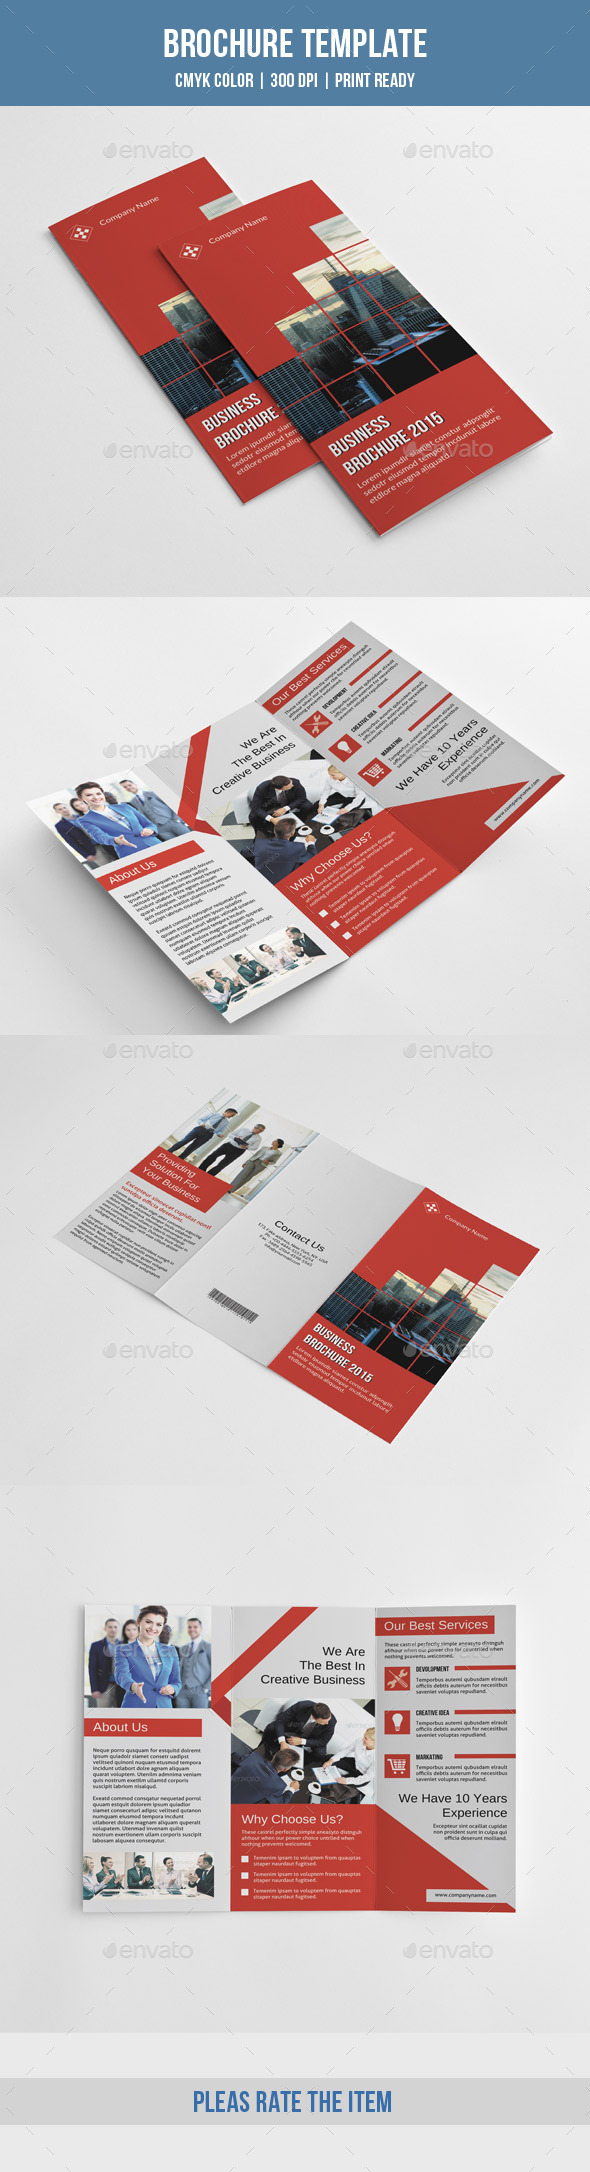 Corporate Trifold Brochure-V221 - Corporate Brochures